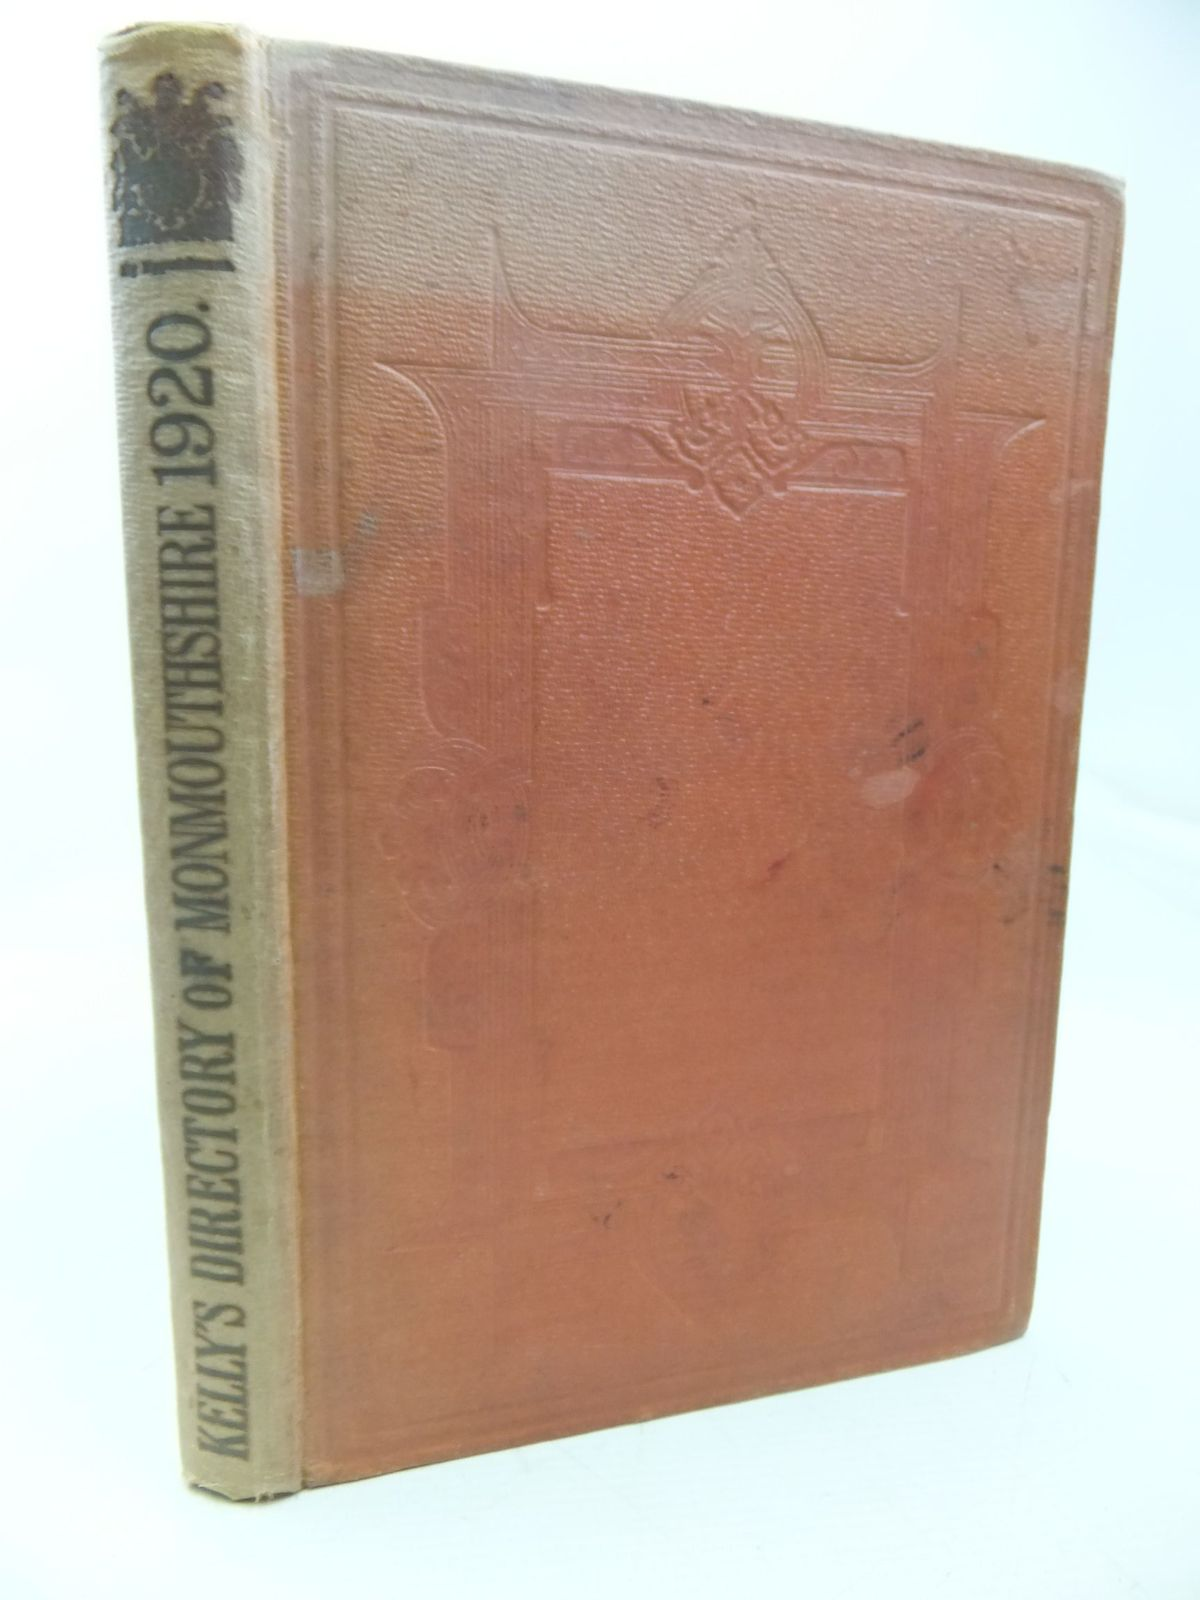 Photo of KELLY'S DIRECTORY OF MONMOUTHSHIRE 1920